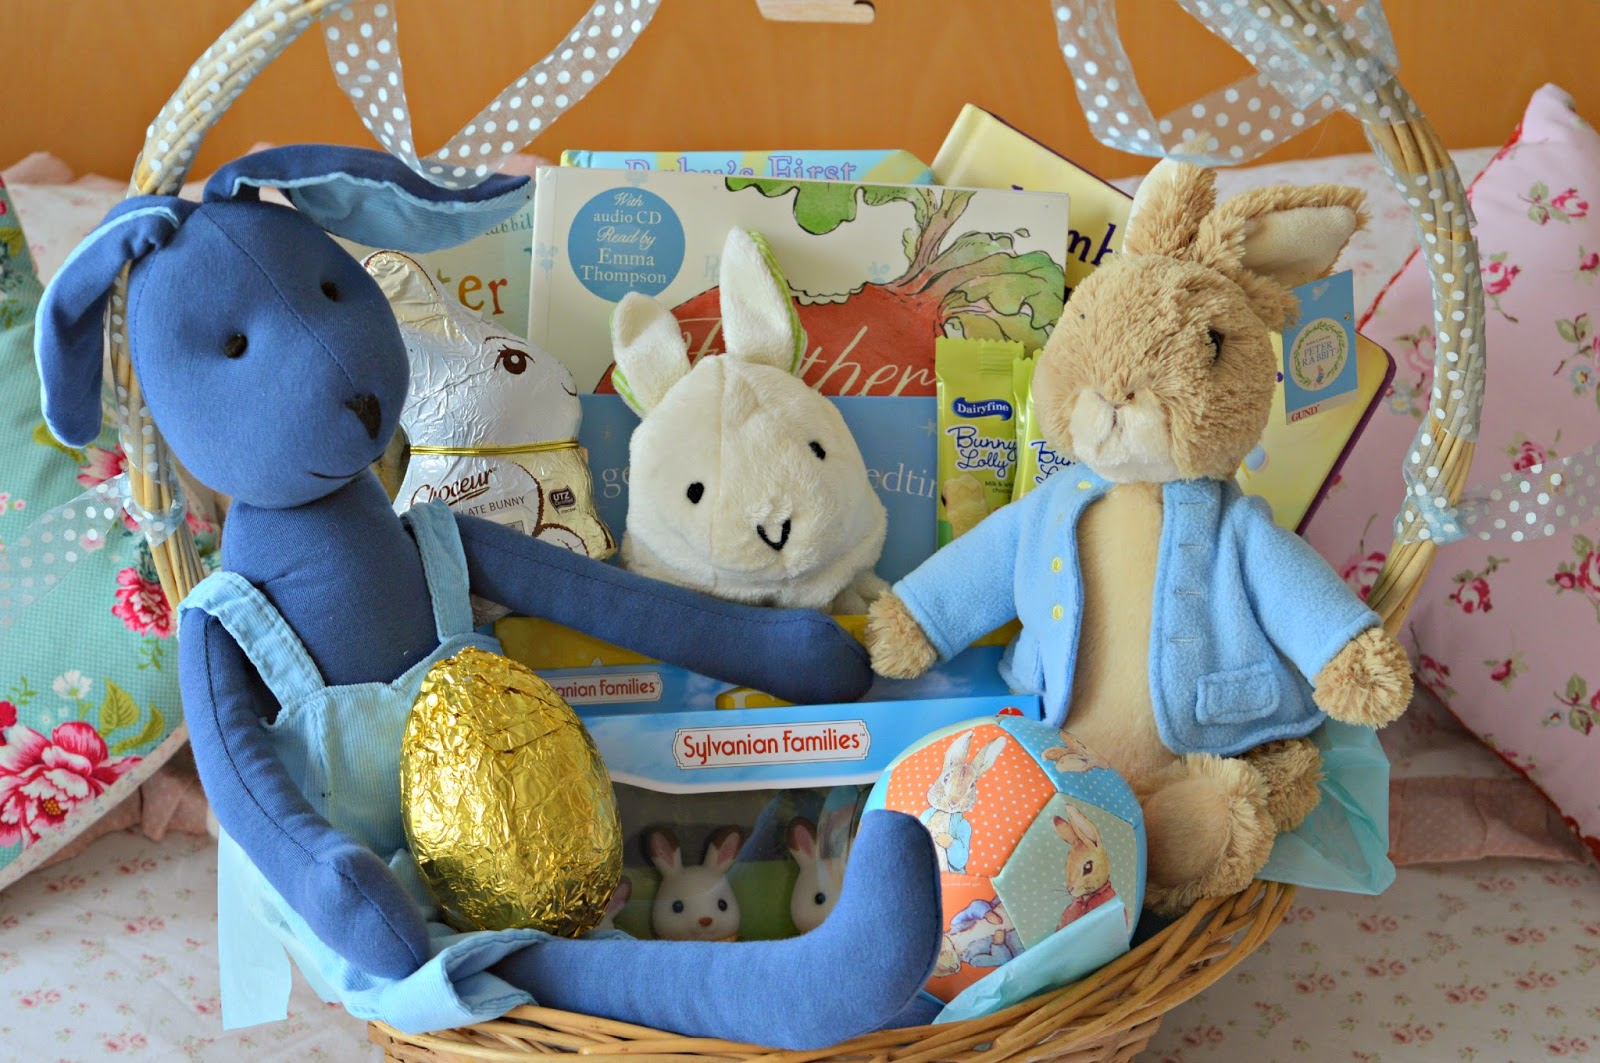 Tyler lees easter basket peter rabbit books bunnies this basket was relatively cheap for me i think i only spent about 20 of my own money buying things for it as i had vouchers and credit available for the negle Choice Image